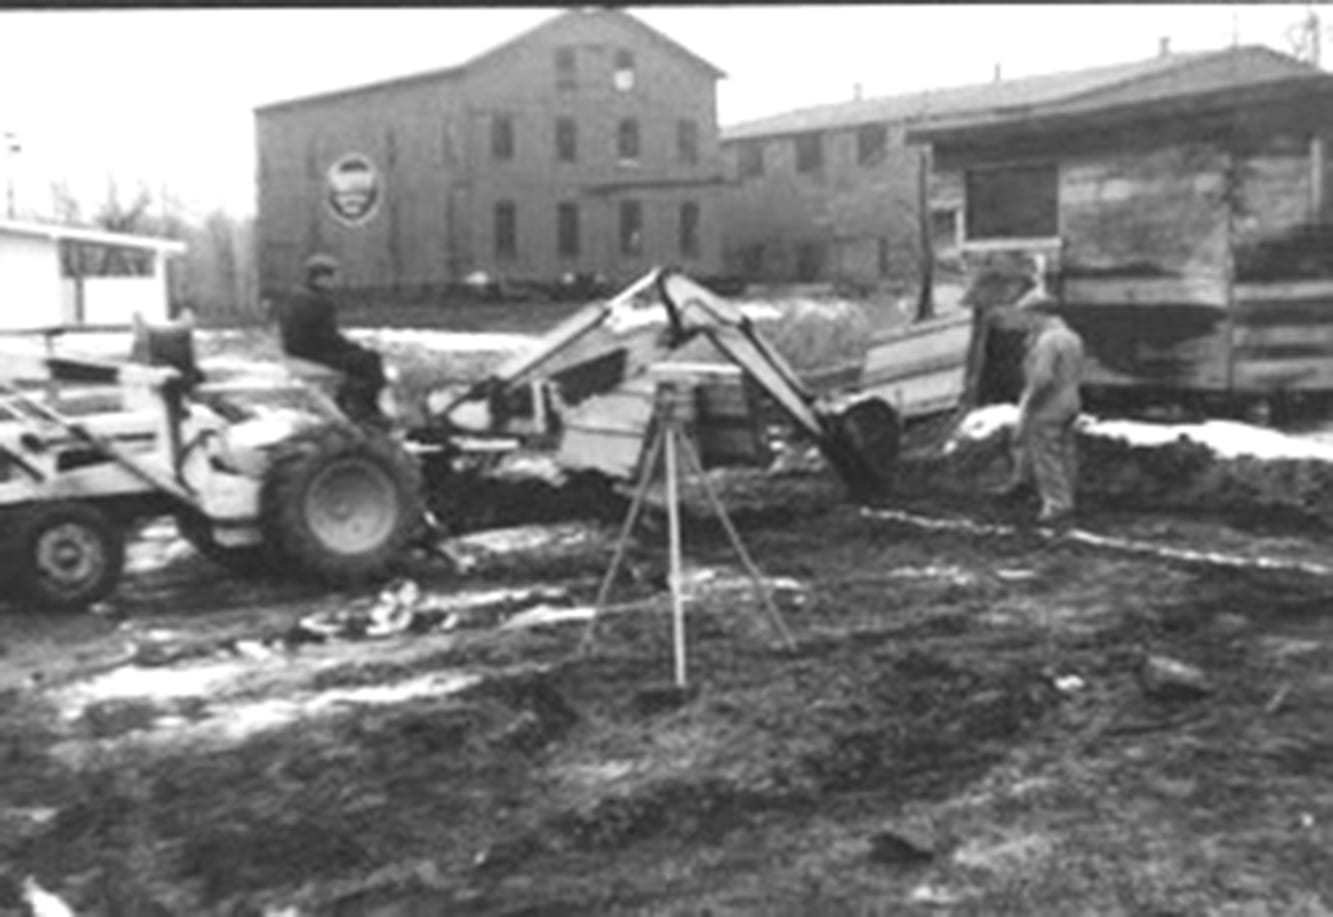 Baldwinsville Halloween Festival 2020 Park Baldwinsville History Mystery: Do you know anything about this